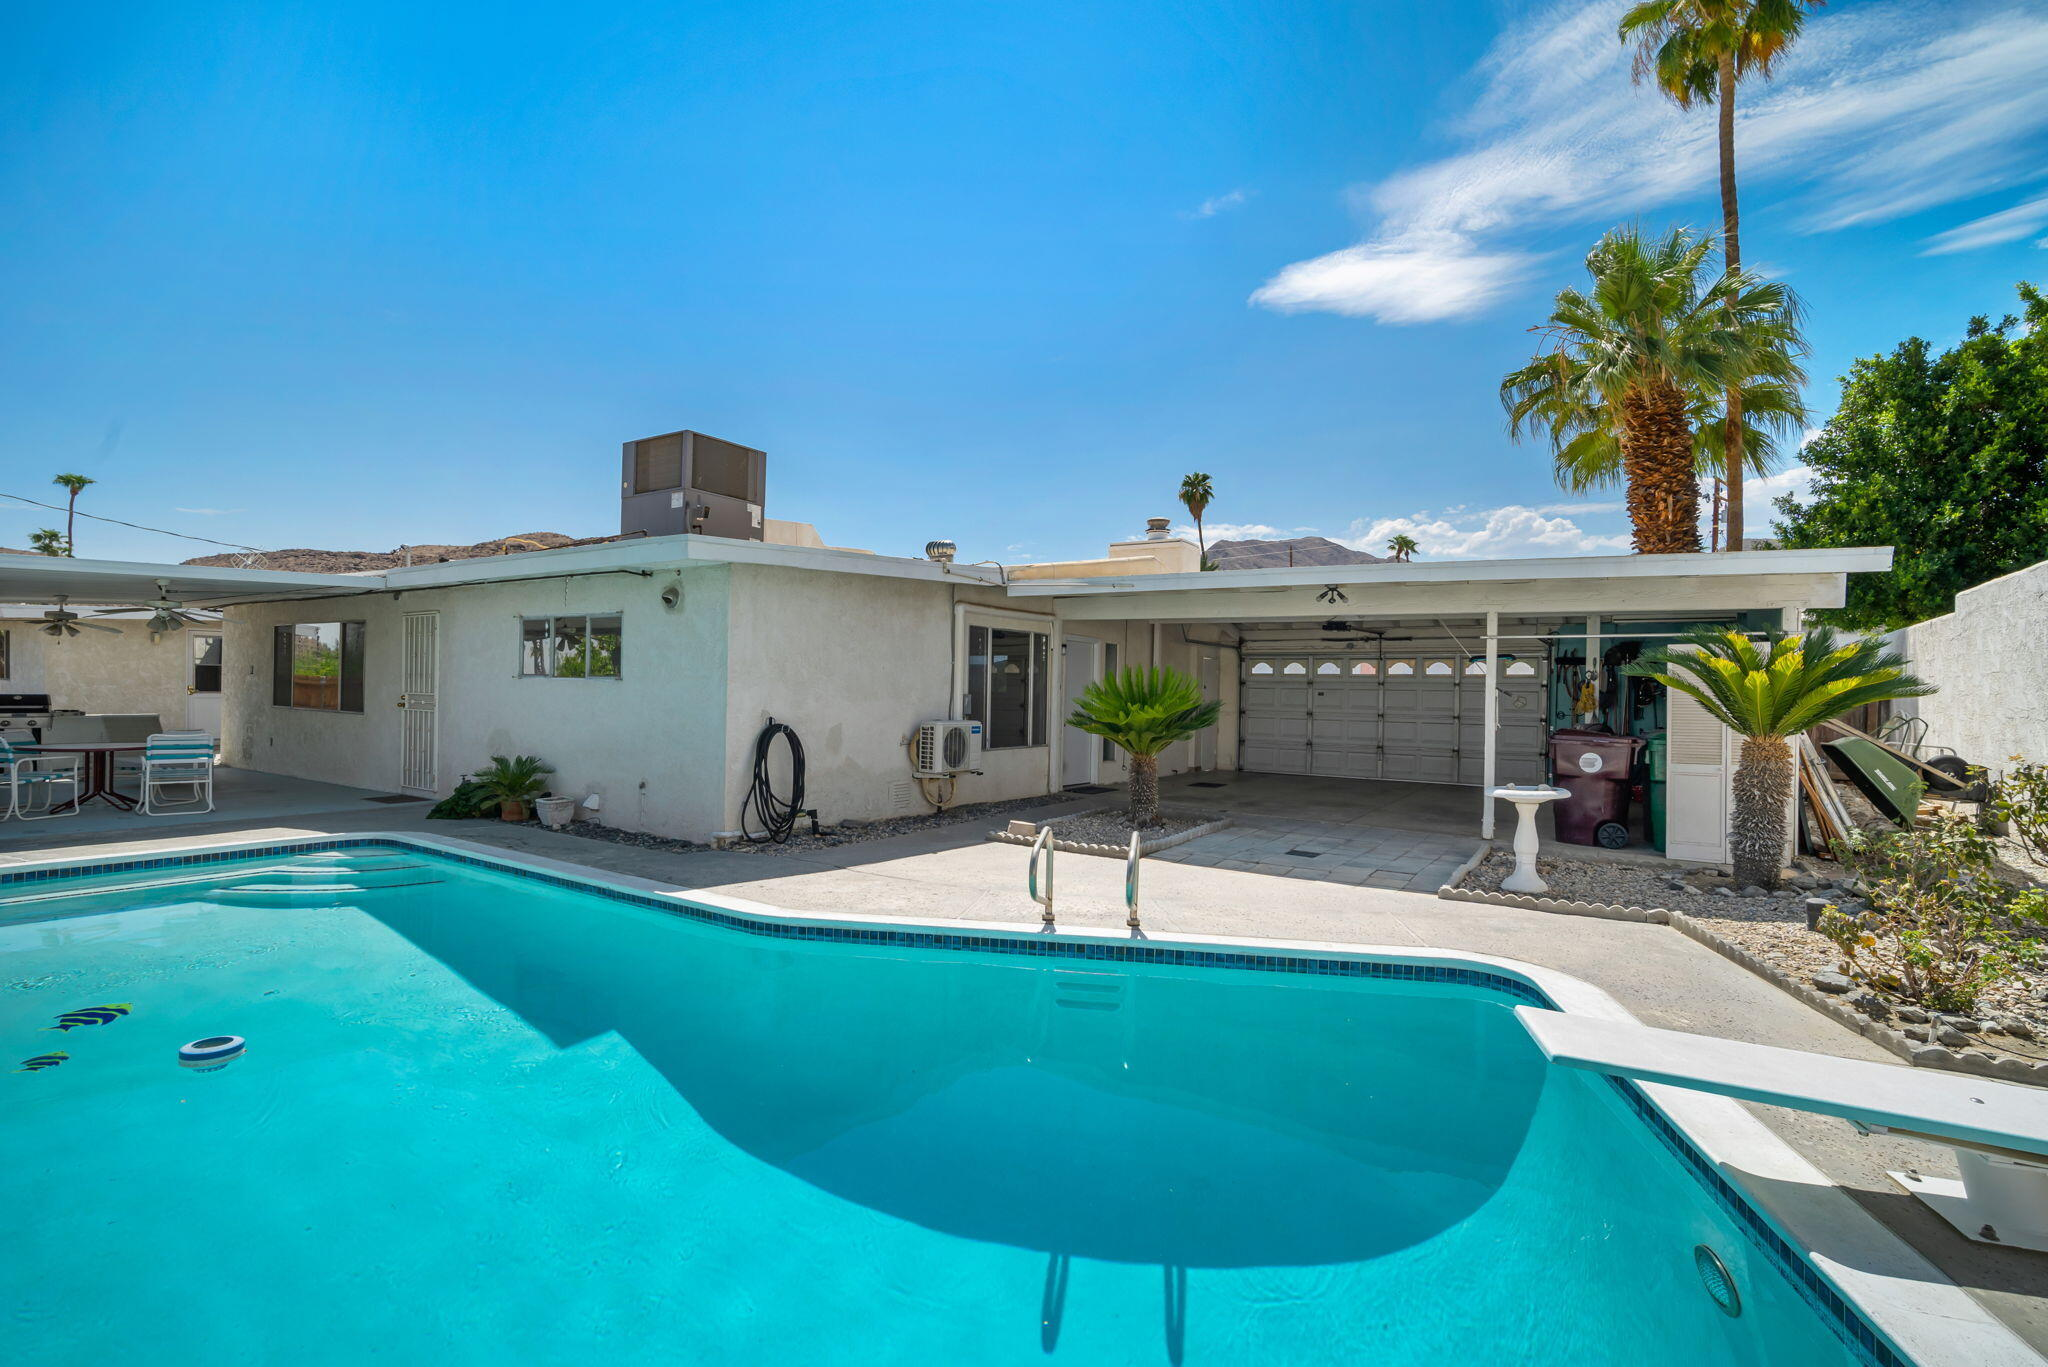 If classic Desert Pool Homes are your passion, you'll love this mid-century single story residence located in the peaceful and serene Cathedral City Cove neighborhood. Tucked away on the south side of Cathedral City, this meticulously kept home has 1726sqft. of interior living space, including 2 BD/3 BA, a separate entry living room with picture window, and a family room (with rock-encased fireplace and vaulted ceilings), which could serve as the 3rd bedroom, den/office, or left up to your imagination. Numerous upgrades to include a newer Torch Down Roof (2018), new Roof Top 5 ton A/C unit (2021), On Demand Water Heater, newer mini-split A/C Mr. Cool unit in the family room (2018) and a new water main Pet piping from the street to the house (2021). The centrally located kitchen features a dining area, built-in cabinetry/hutch, breakfast bar, newer SS LG stainless appliances (2019), tile counters/backsplash, double-sided sink and built-in microwave. Guest bedroom has adjacent full bath with shower over tub, and the master retreat boasts multiple closets, shower stall and backyard access. Vintage rear yard pool with mountain views, a new Pentair Pool Pump (2021), recently bead-blasted tiles and the surface was acid washed; there's even an ''old school'' diving board for all friends and family to enjoy. The covered patio affords shade and don't forget the open-ended 2 car garage. Close to all shopping, restaurants, Aqua Caliente and Palm Springs nightlife. Come see today!